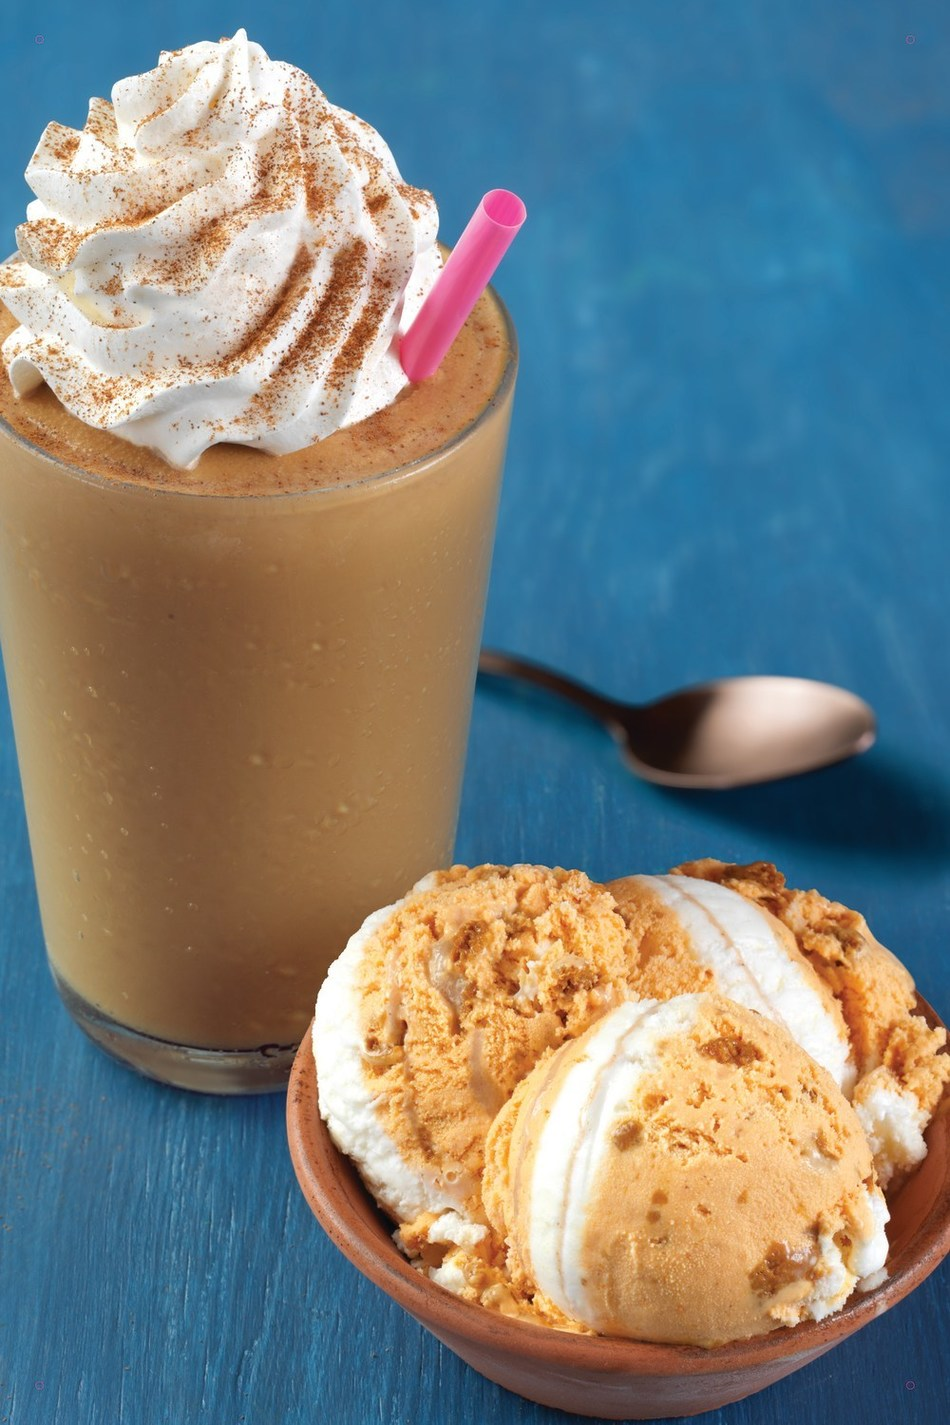 Baskin-Robbins' Pumpkin Cheesecake Cappuccino Blast is a delicious frozen coffee beverage that boasts a rich combination of 100% Arabica coffee, milk and ice cream blended with ice and topped with a cinnamon garnish. For more information, visit www.baskinrobbins.com/